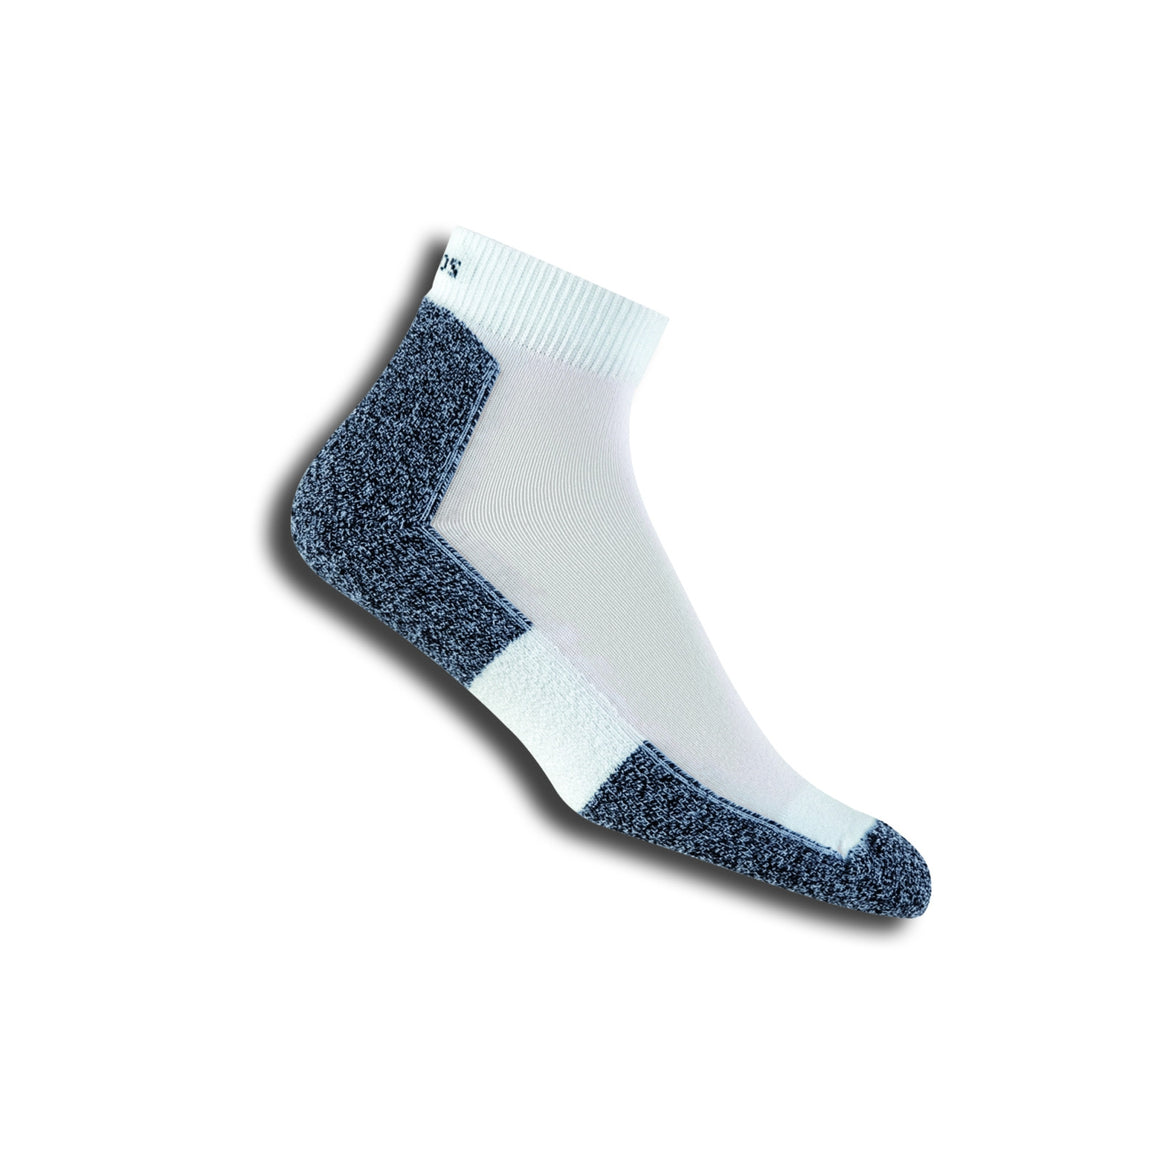 Running Socks - Women's Mini-crew